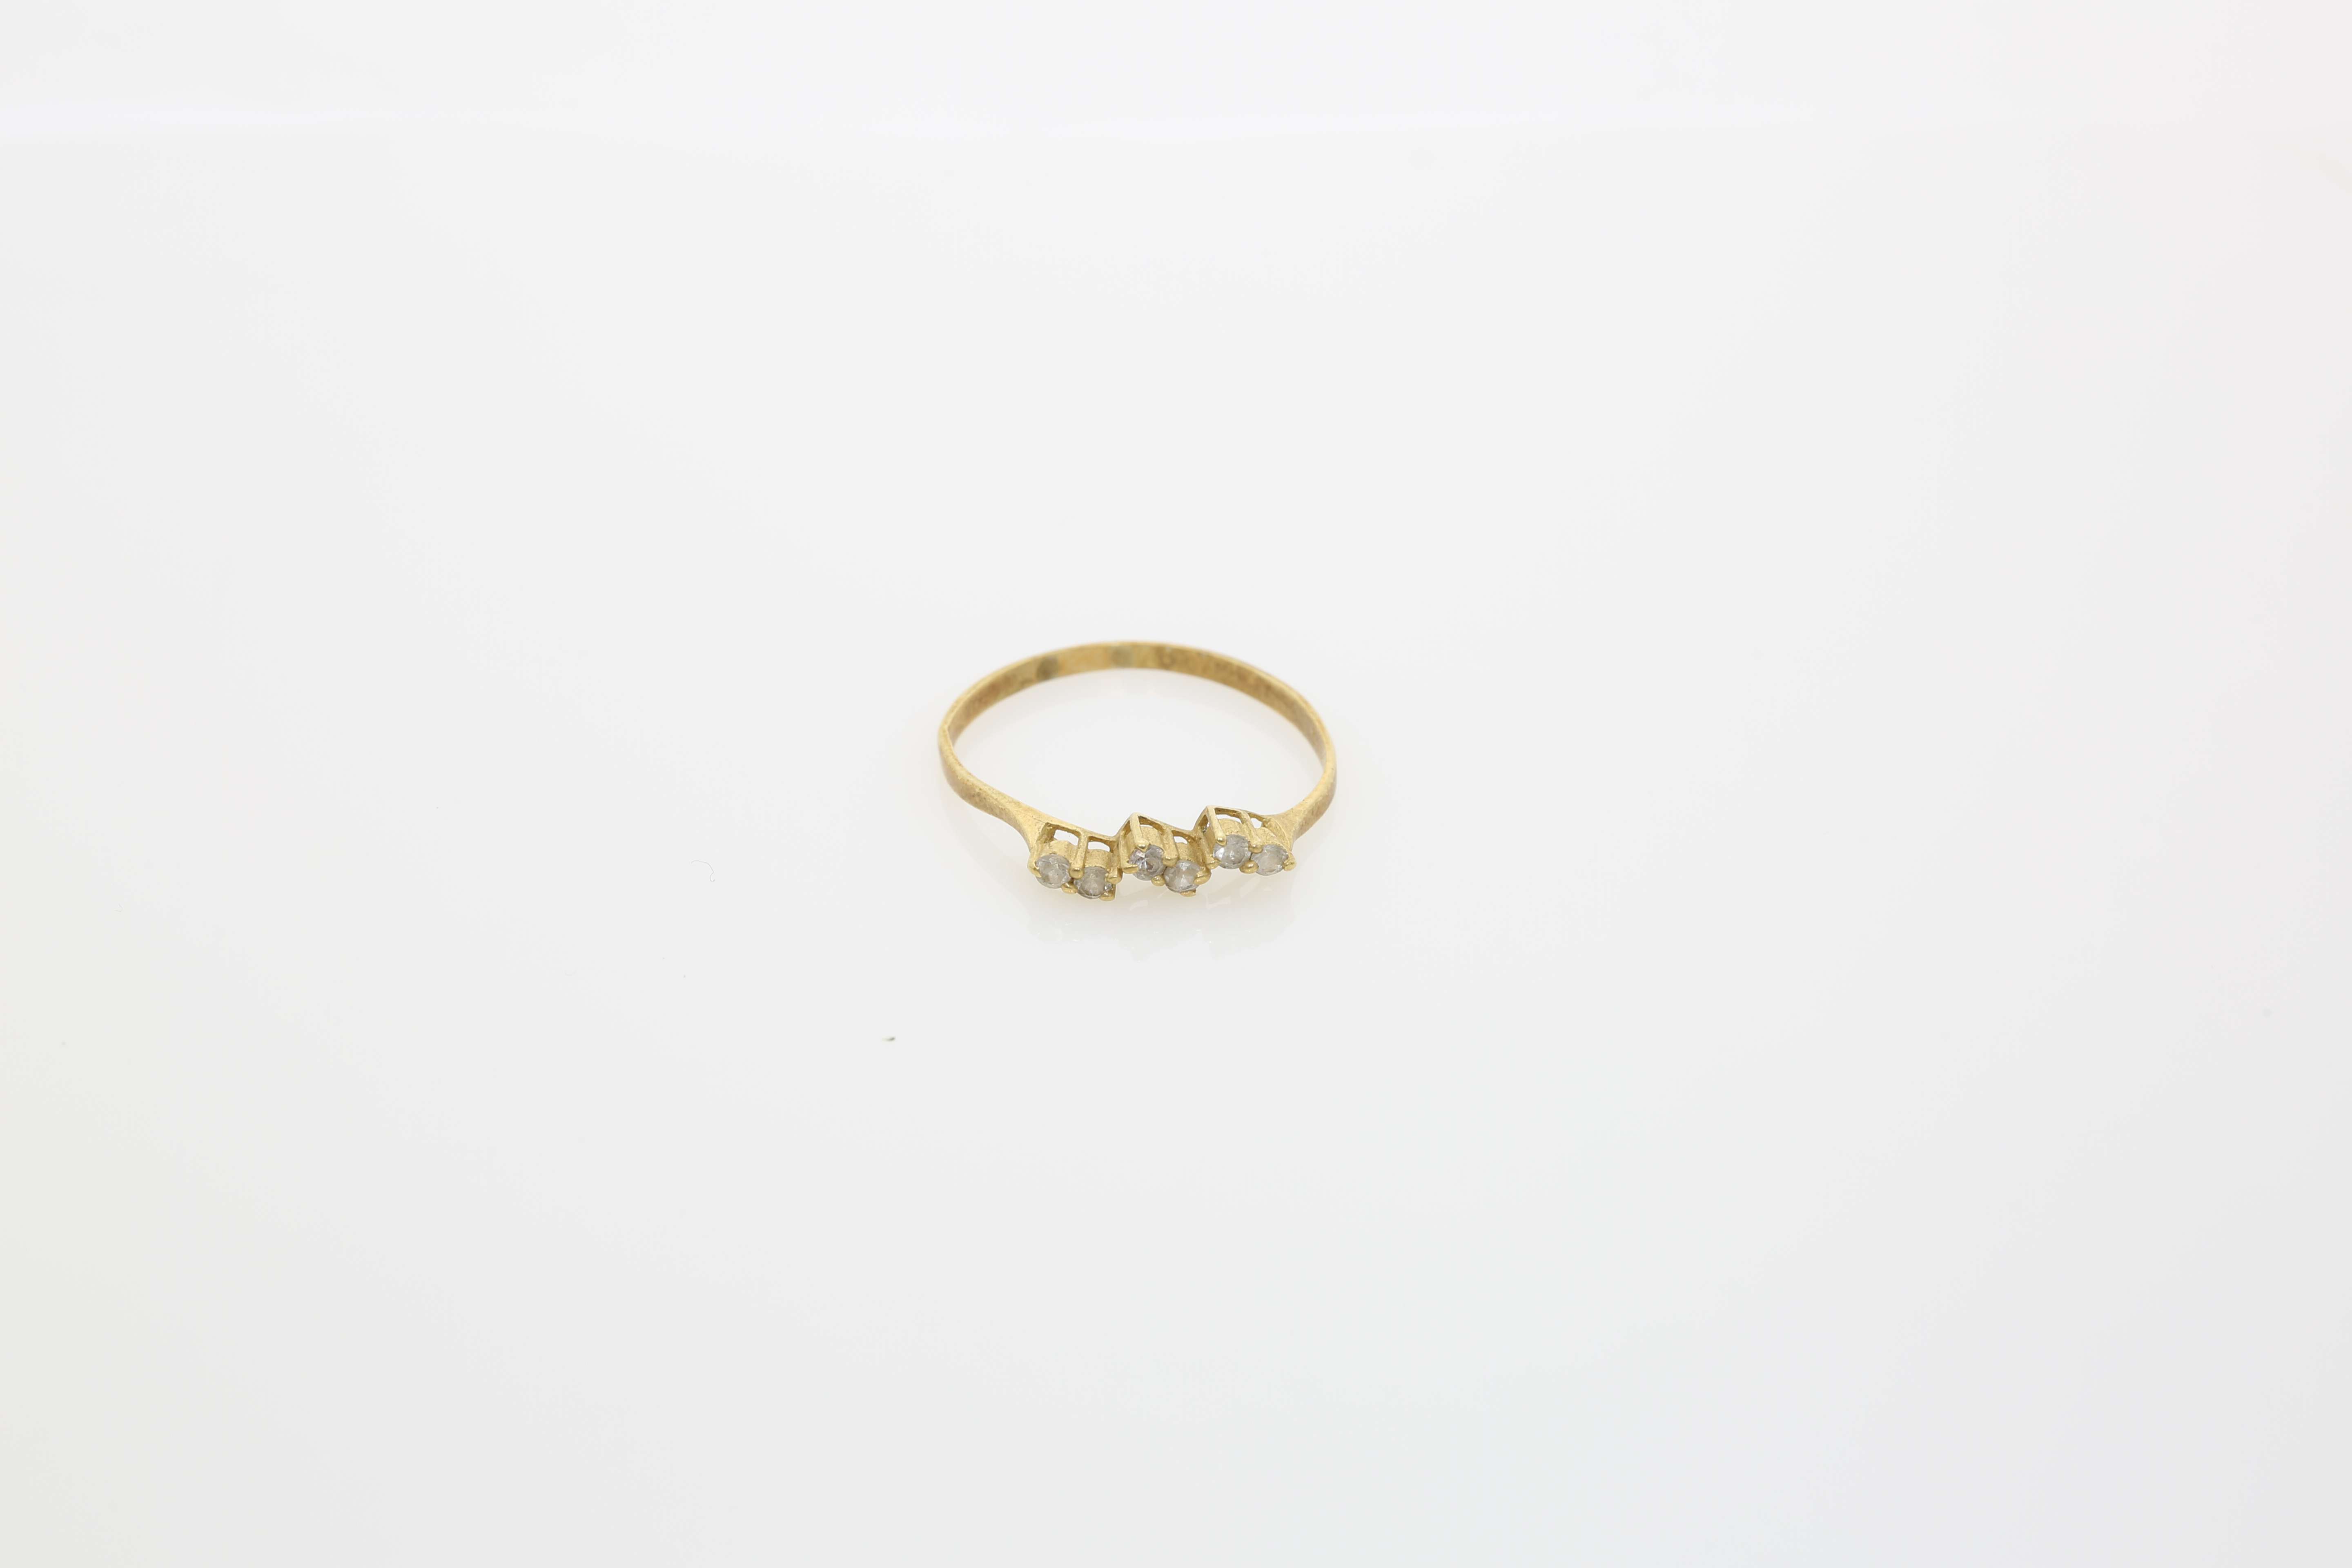 A Lady's gold ring. Approx: 1 gr. - Image 2 of 2